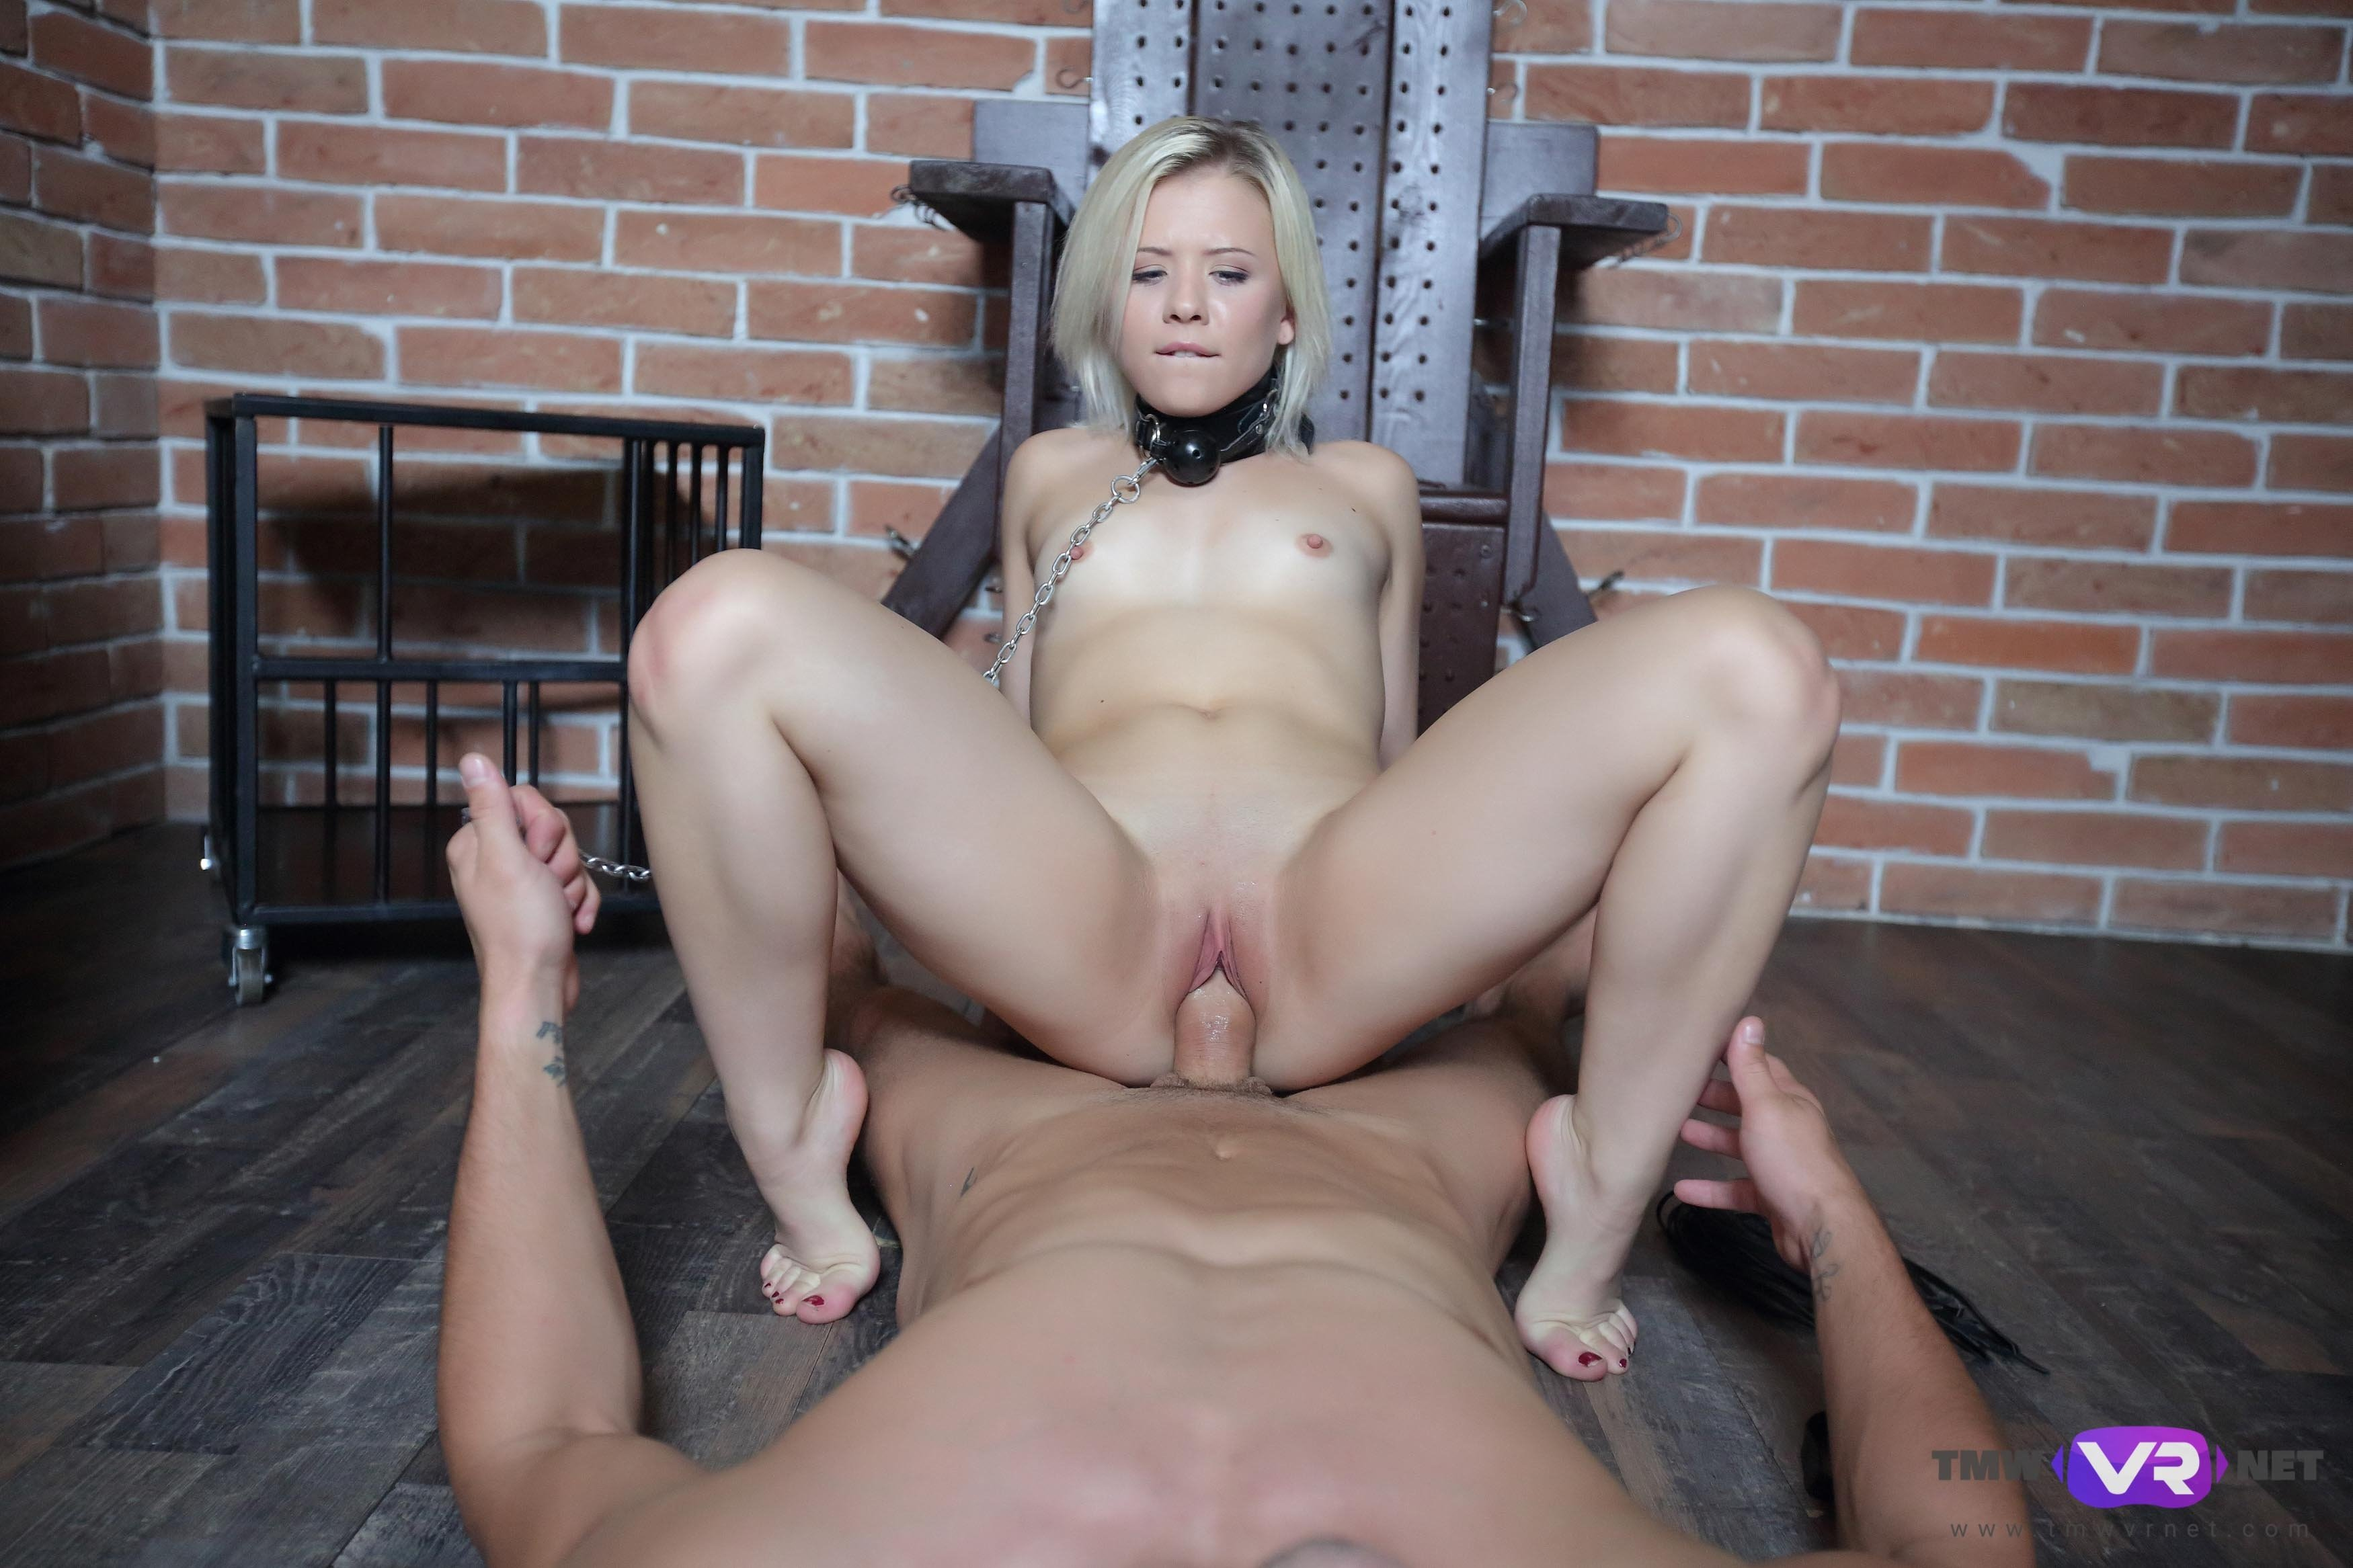 Three way brandi belle blowjob She rides his old cock after cunnilingus